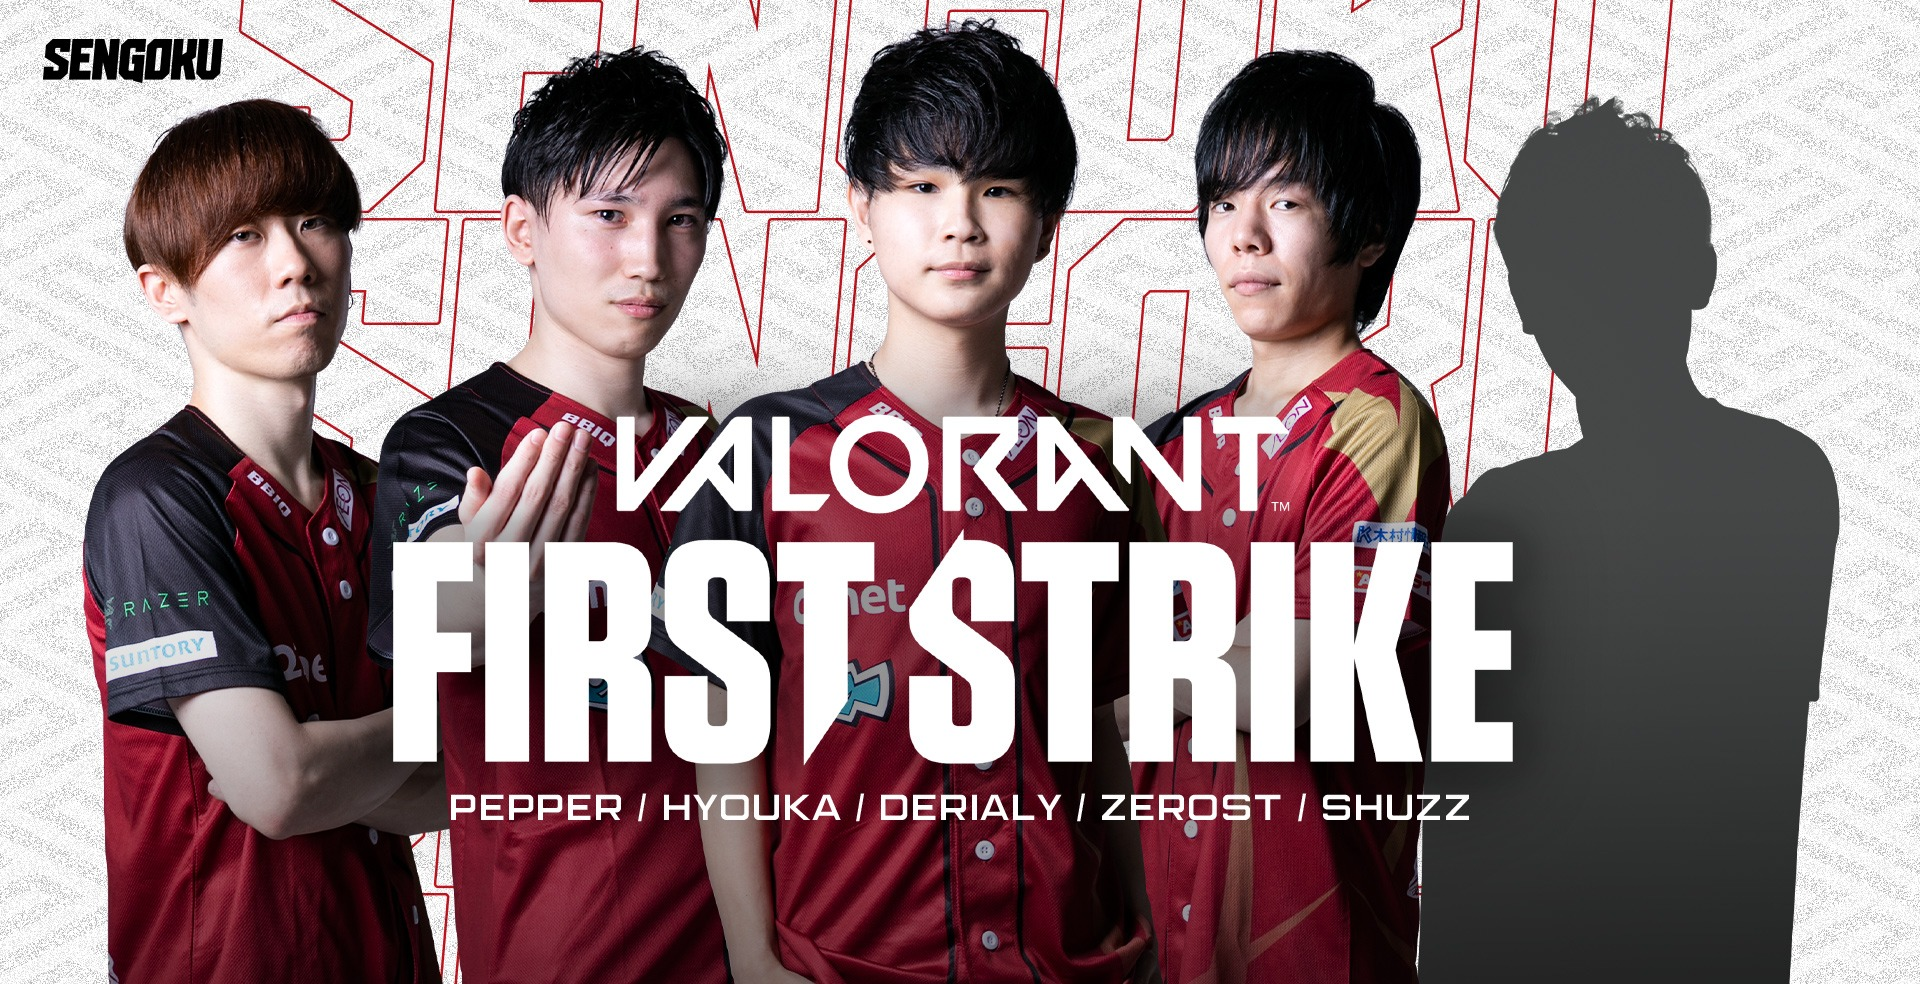 【VALORANT部門】VALORANT FIRST STRIKE JAPAN 出場のお知らせ